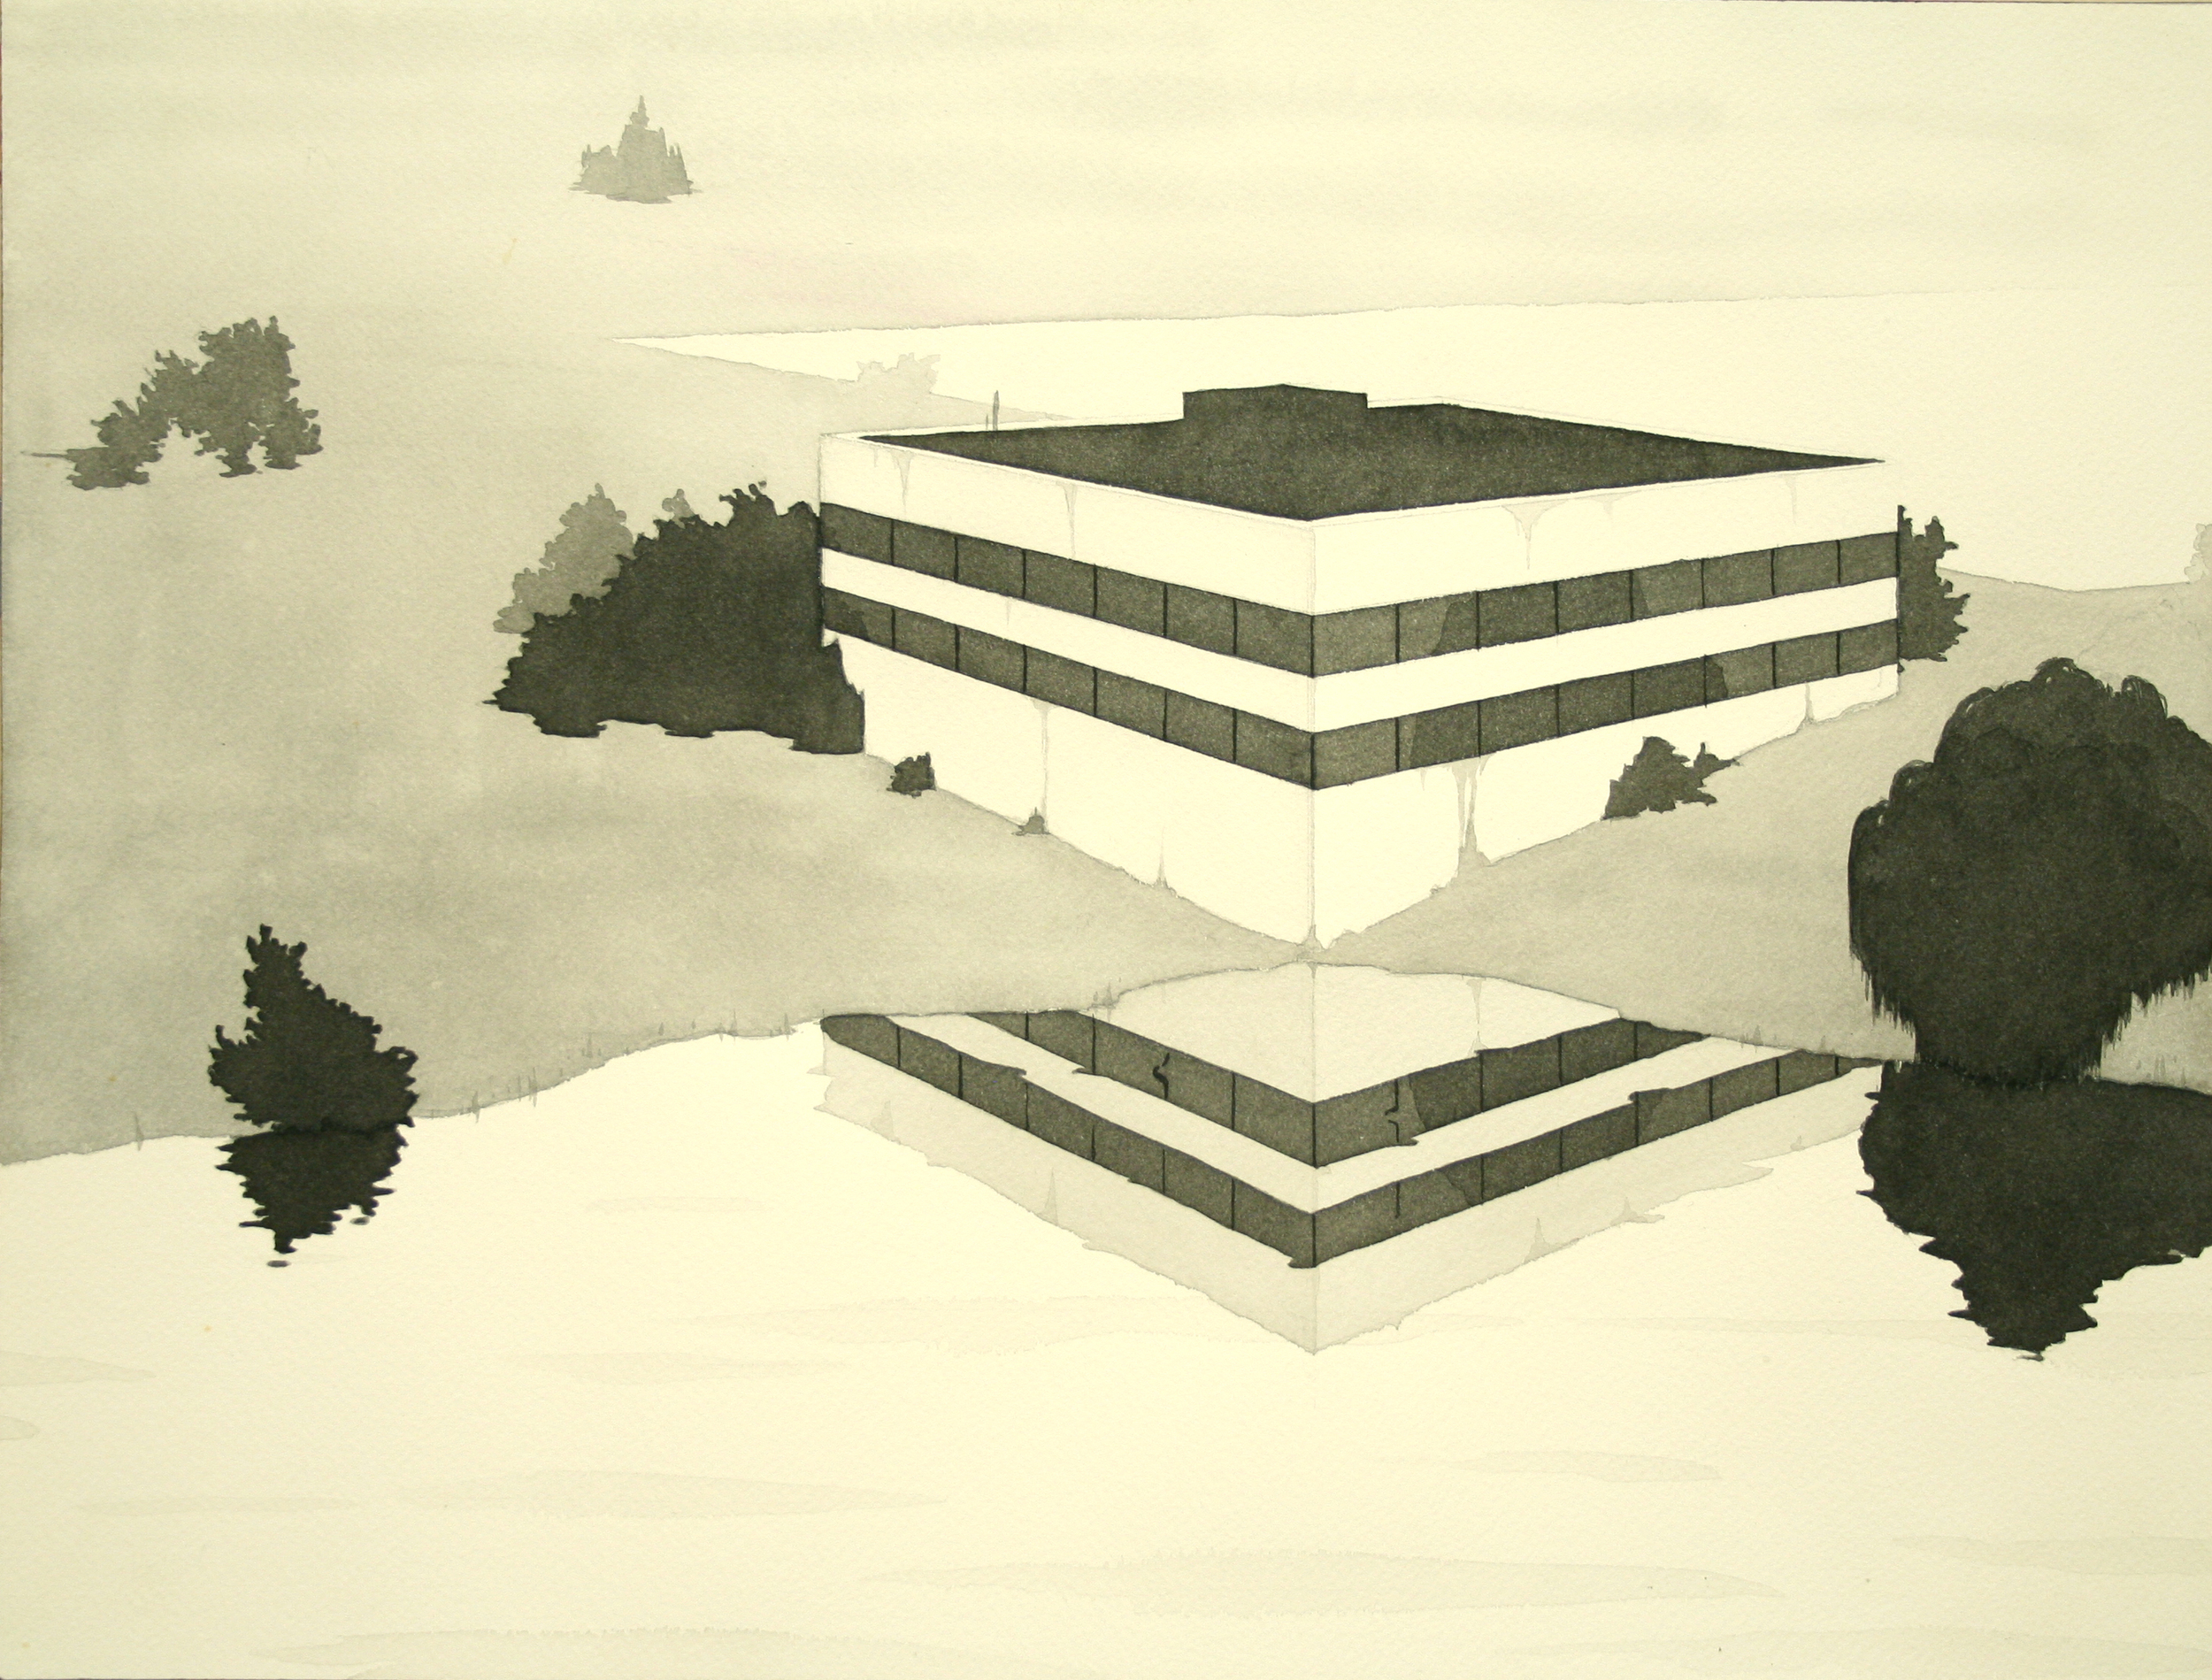 Chris Ballantyne   Office Park (Reflection)  2011 india ink on paper 12 x 16 in